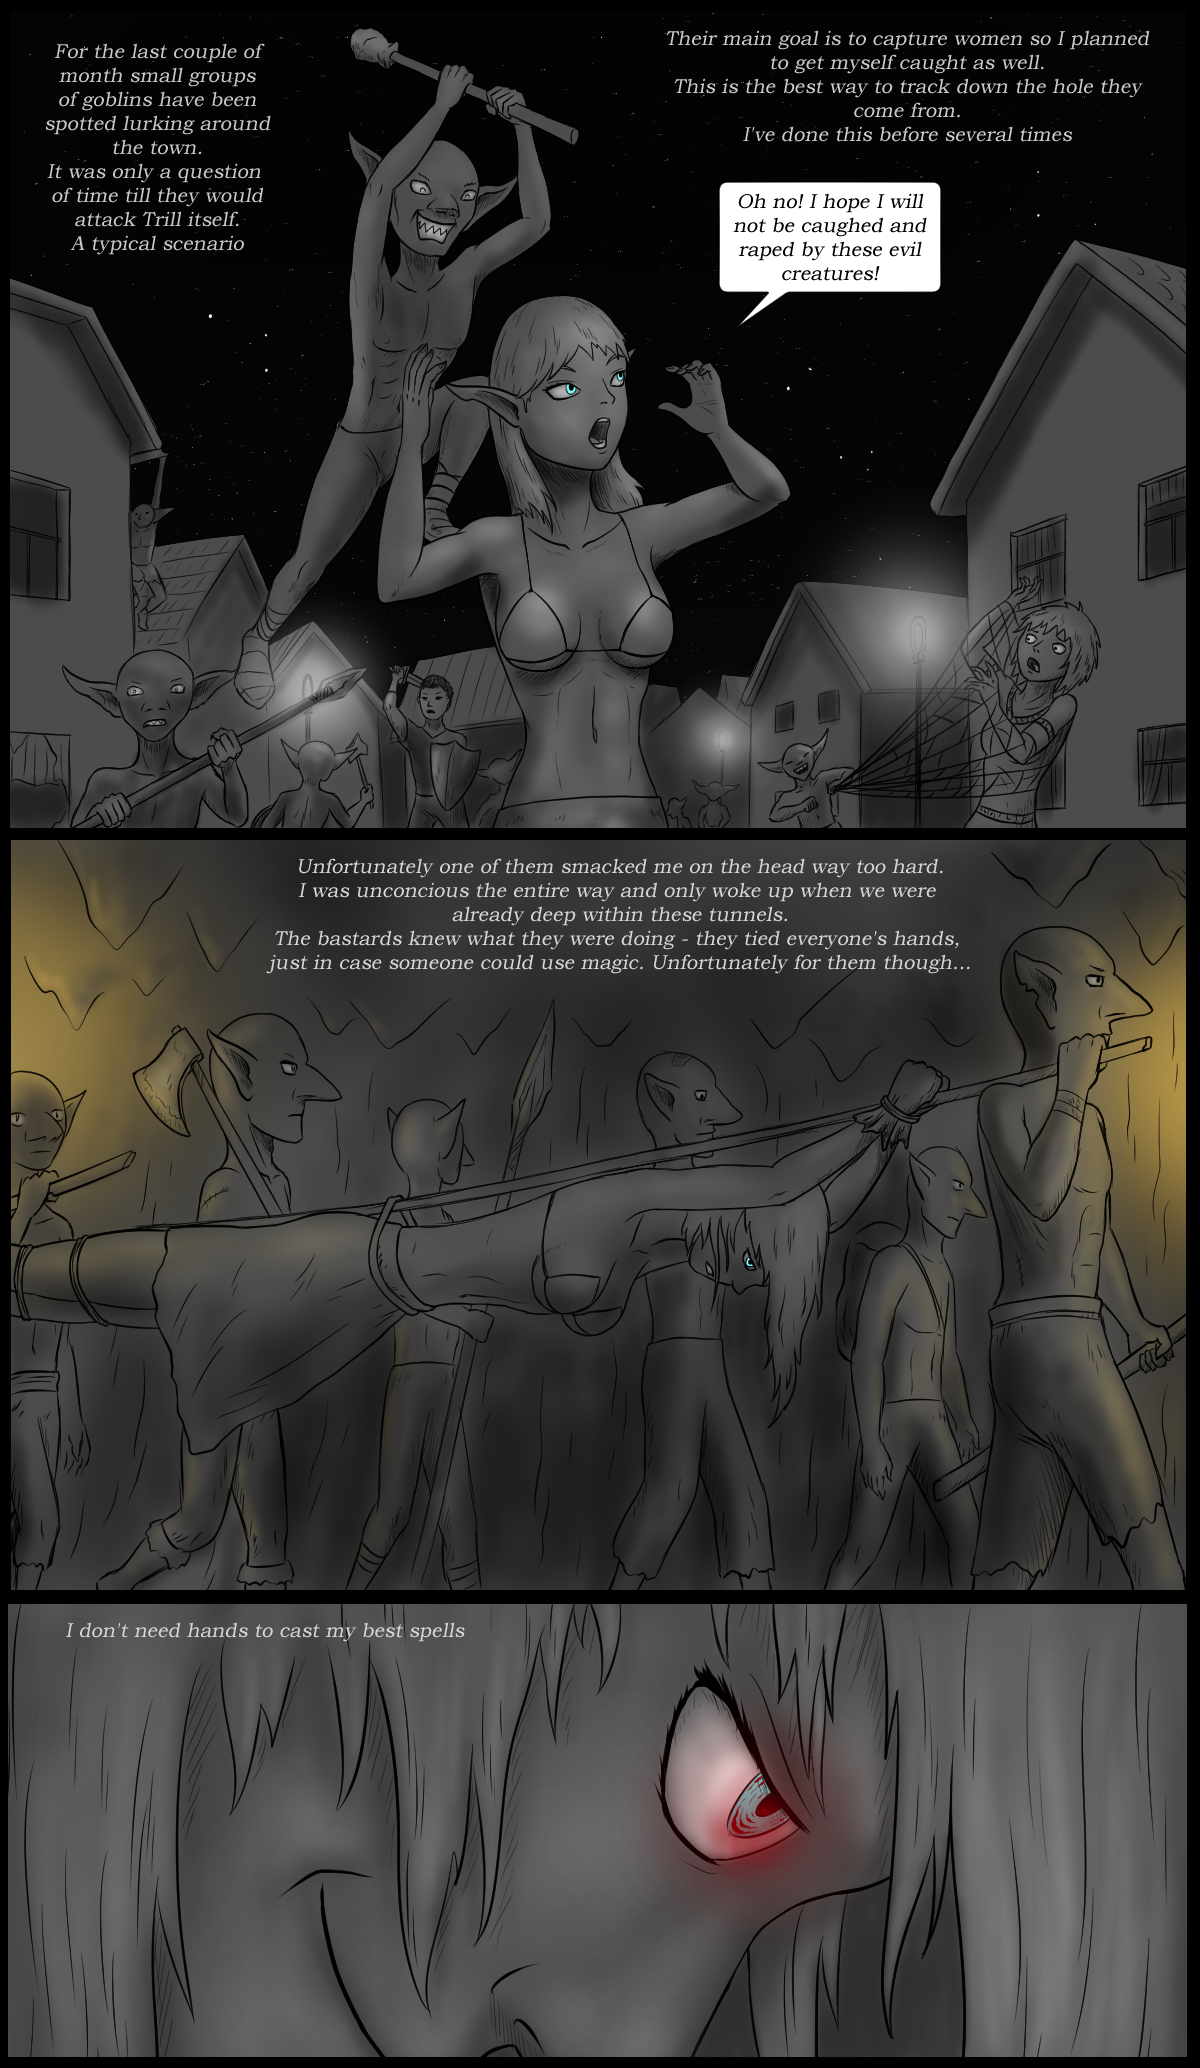 Page 77 - The master plan